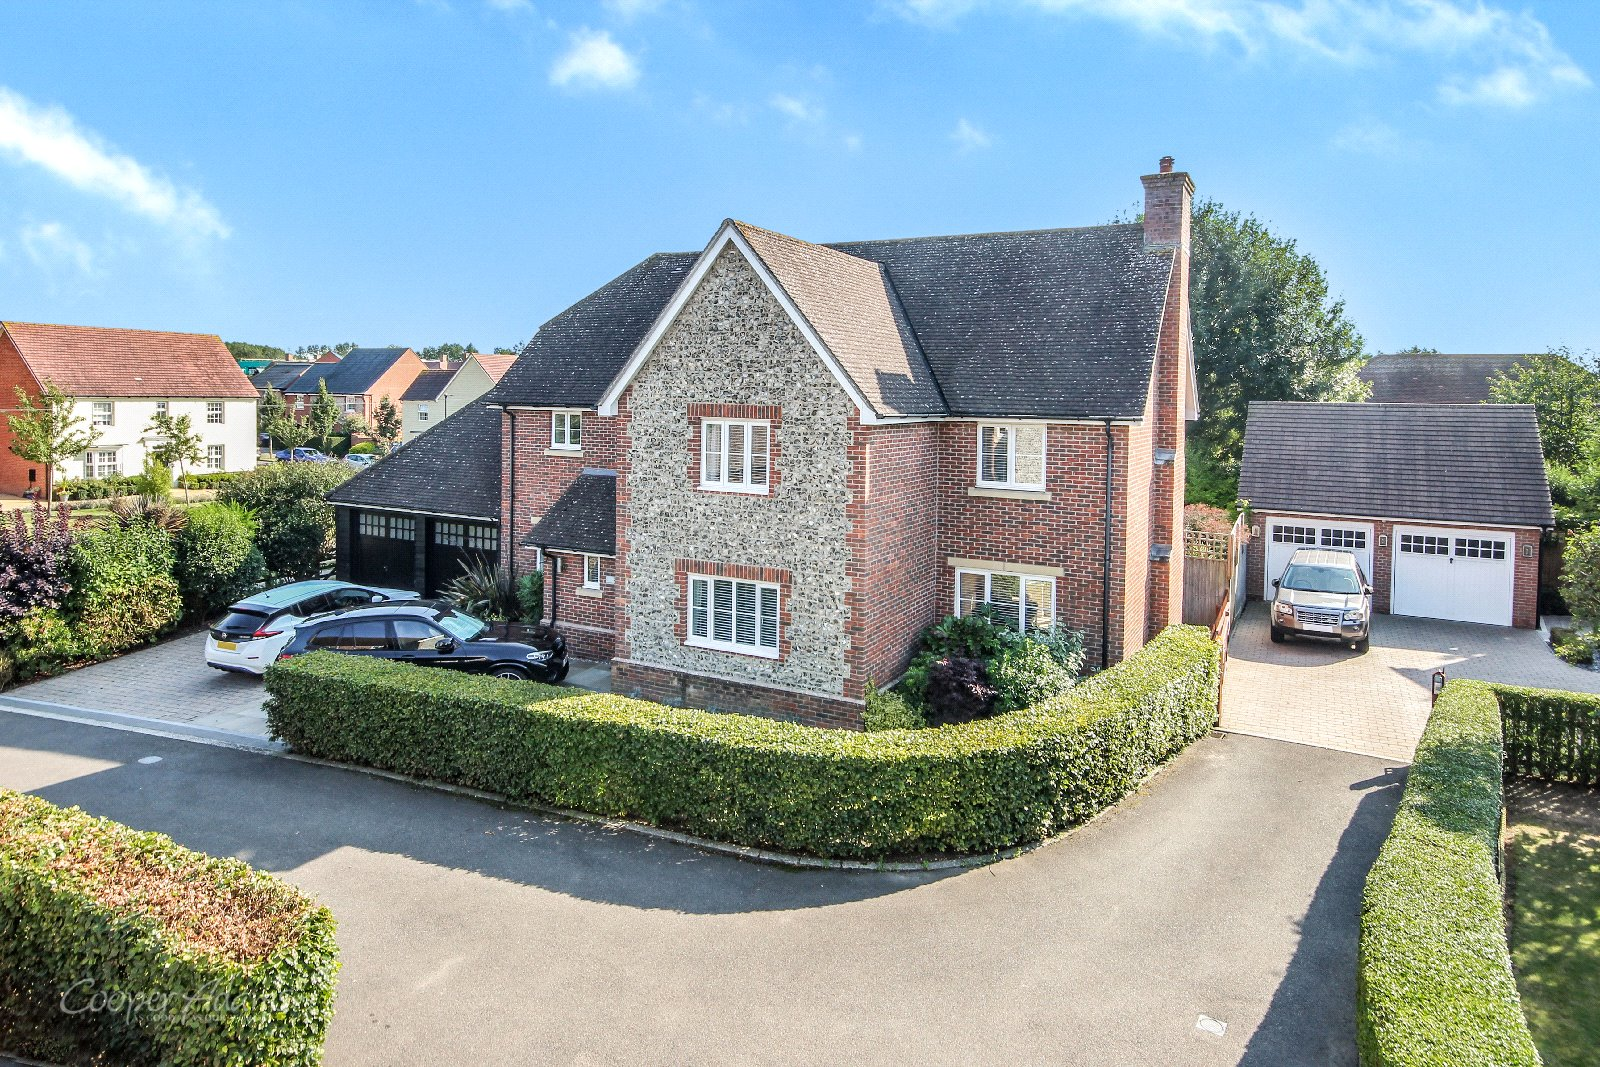 5 bed house for sale in The Chantrelles, Angmering, BN16